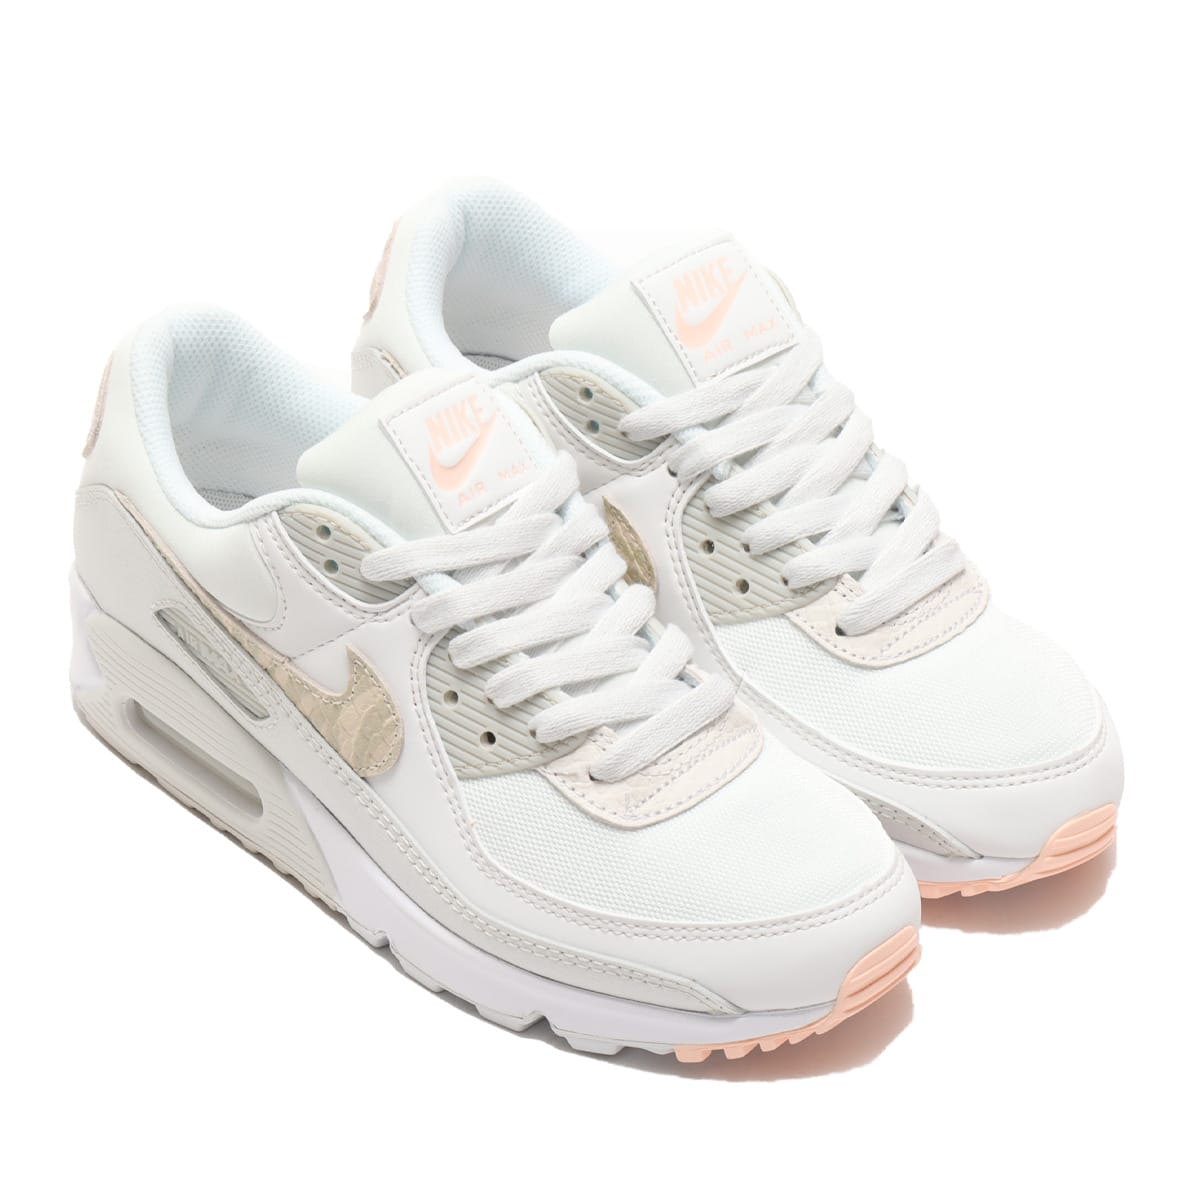 NIKE W AIR MAX 90 SE SUMMIT WHITE/SUMMIT WHITE-WHITE 21SP-I_photo_large